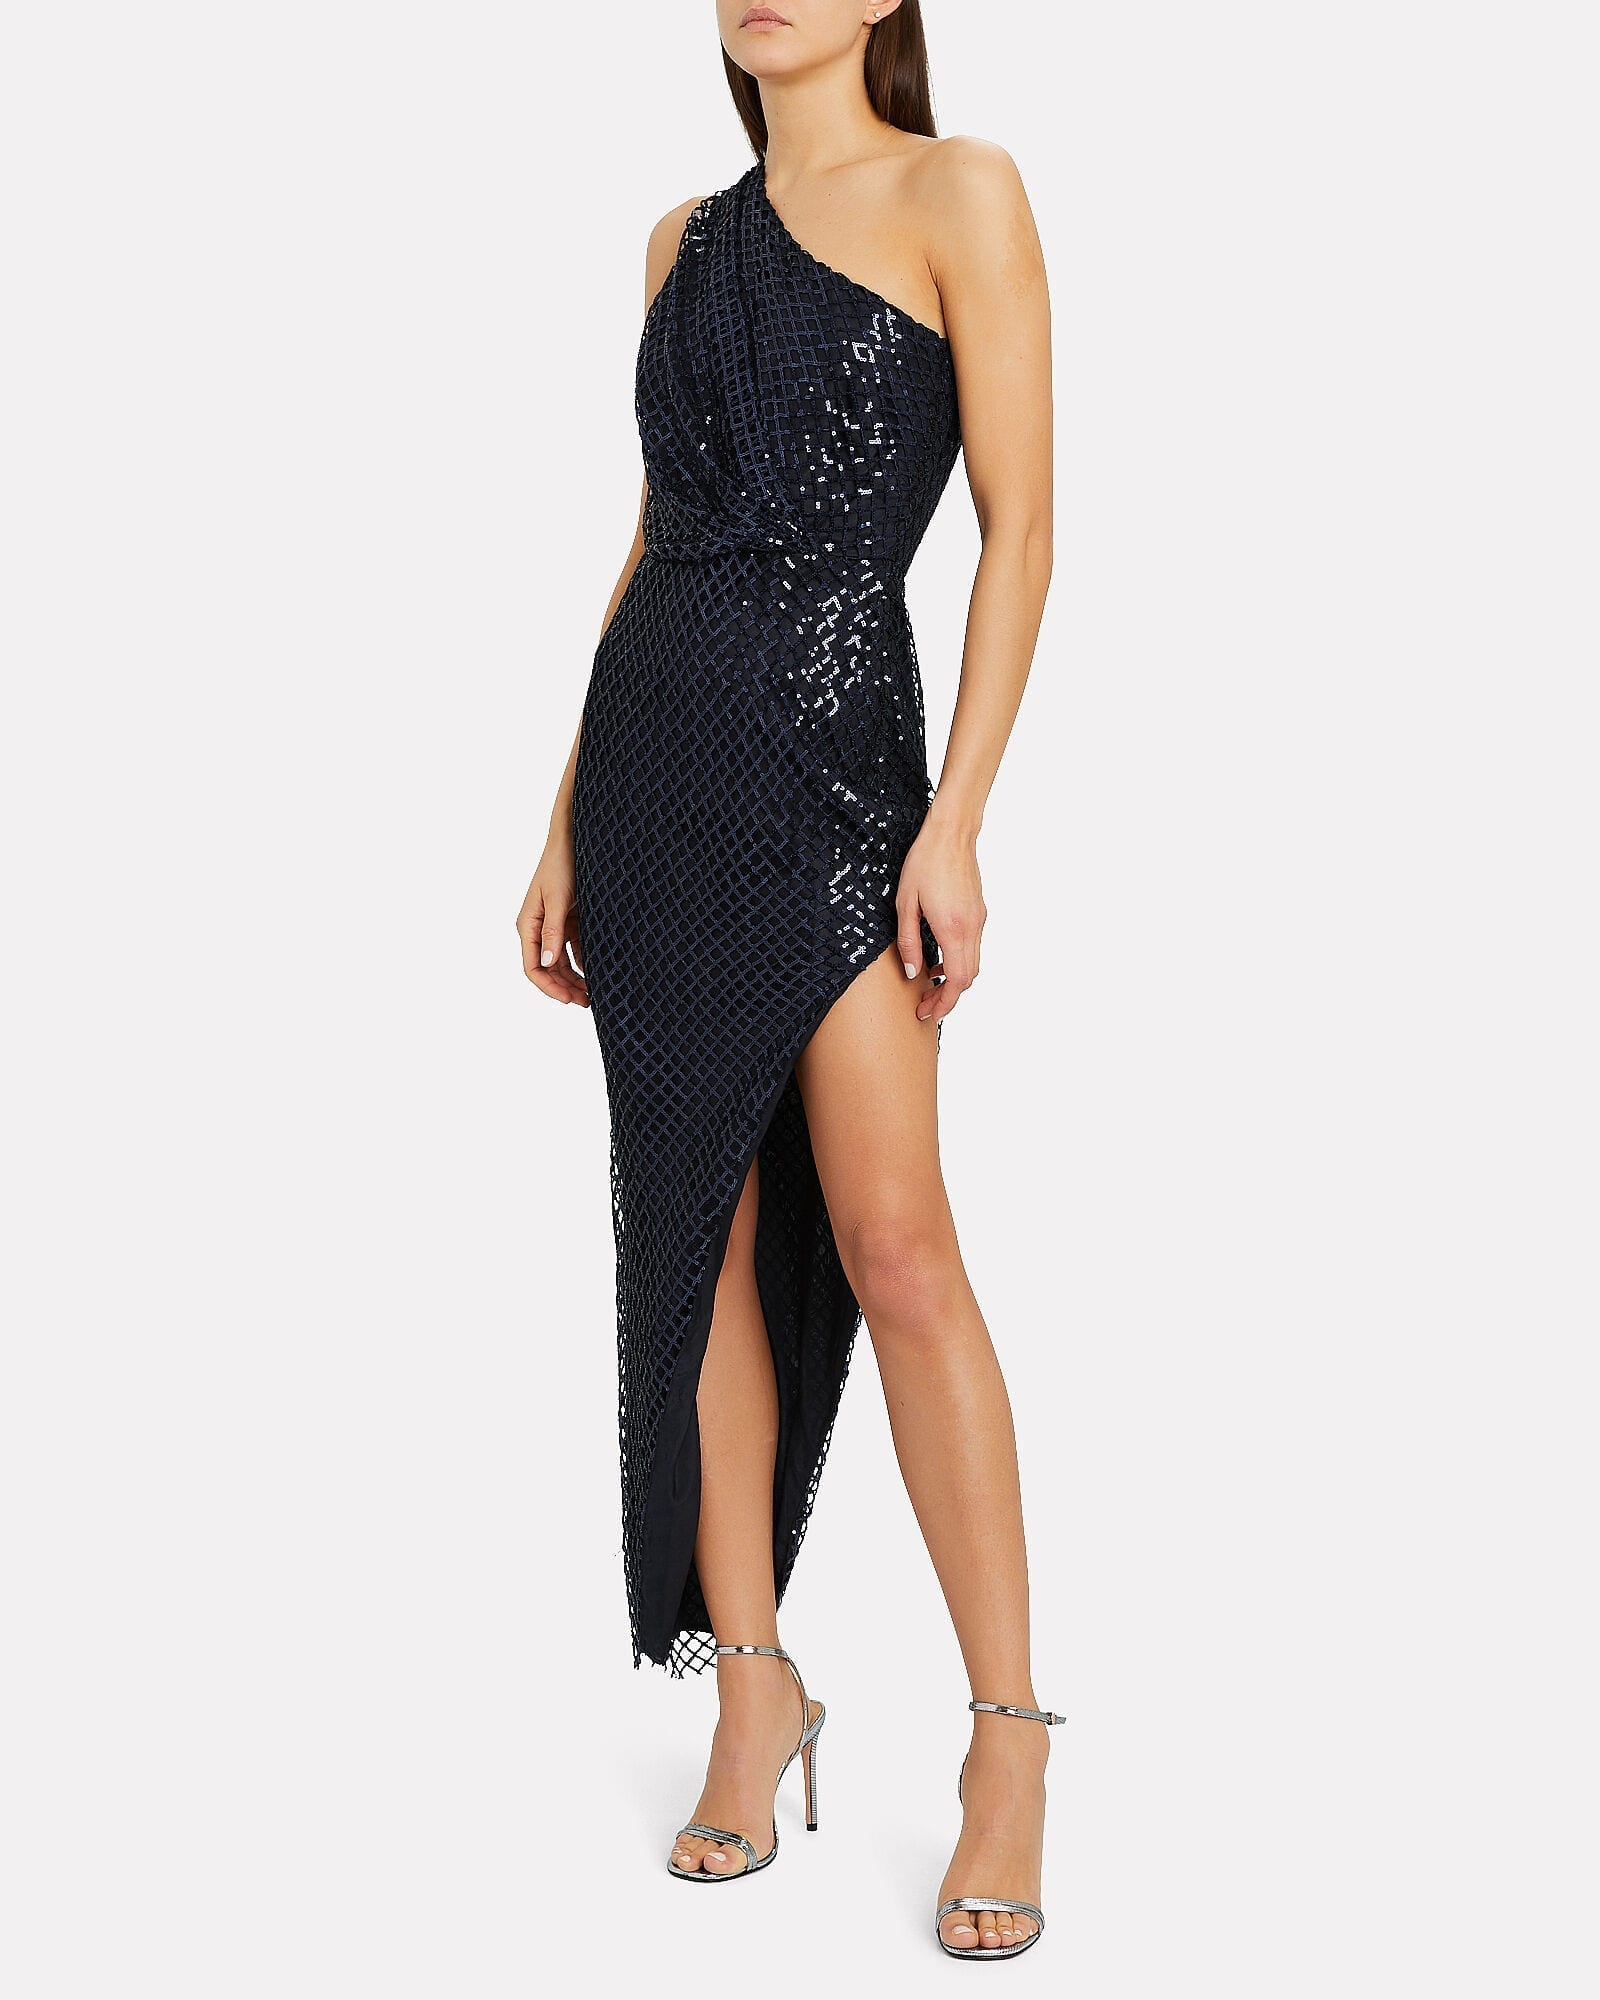 MICHELLE MASON Sequined Netting One-Shoulder Gown